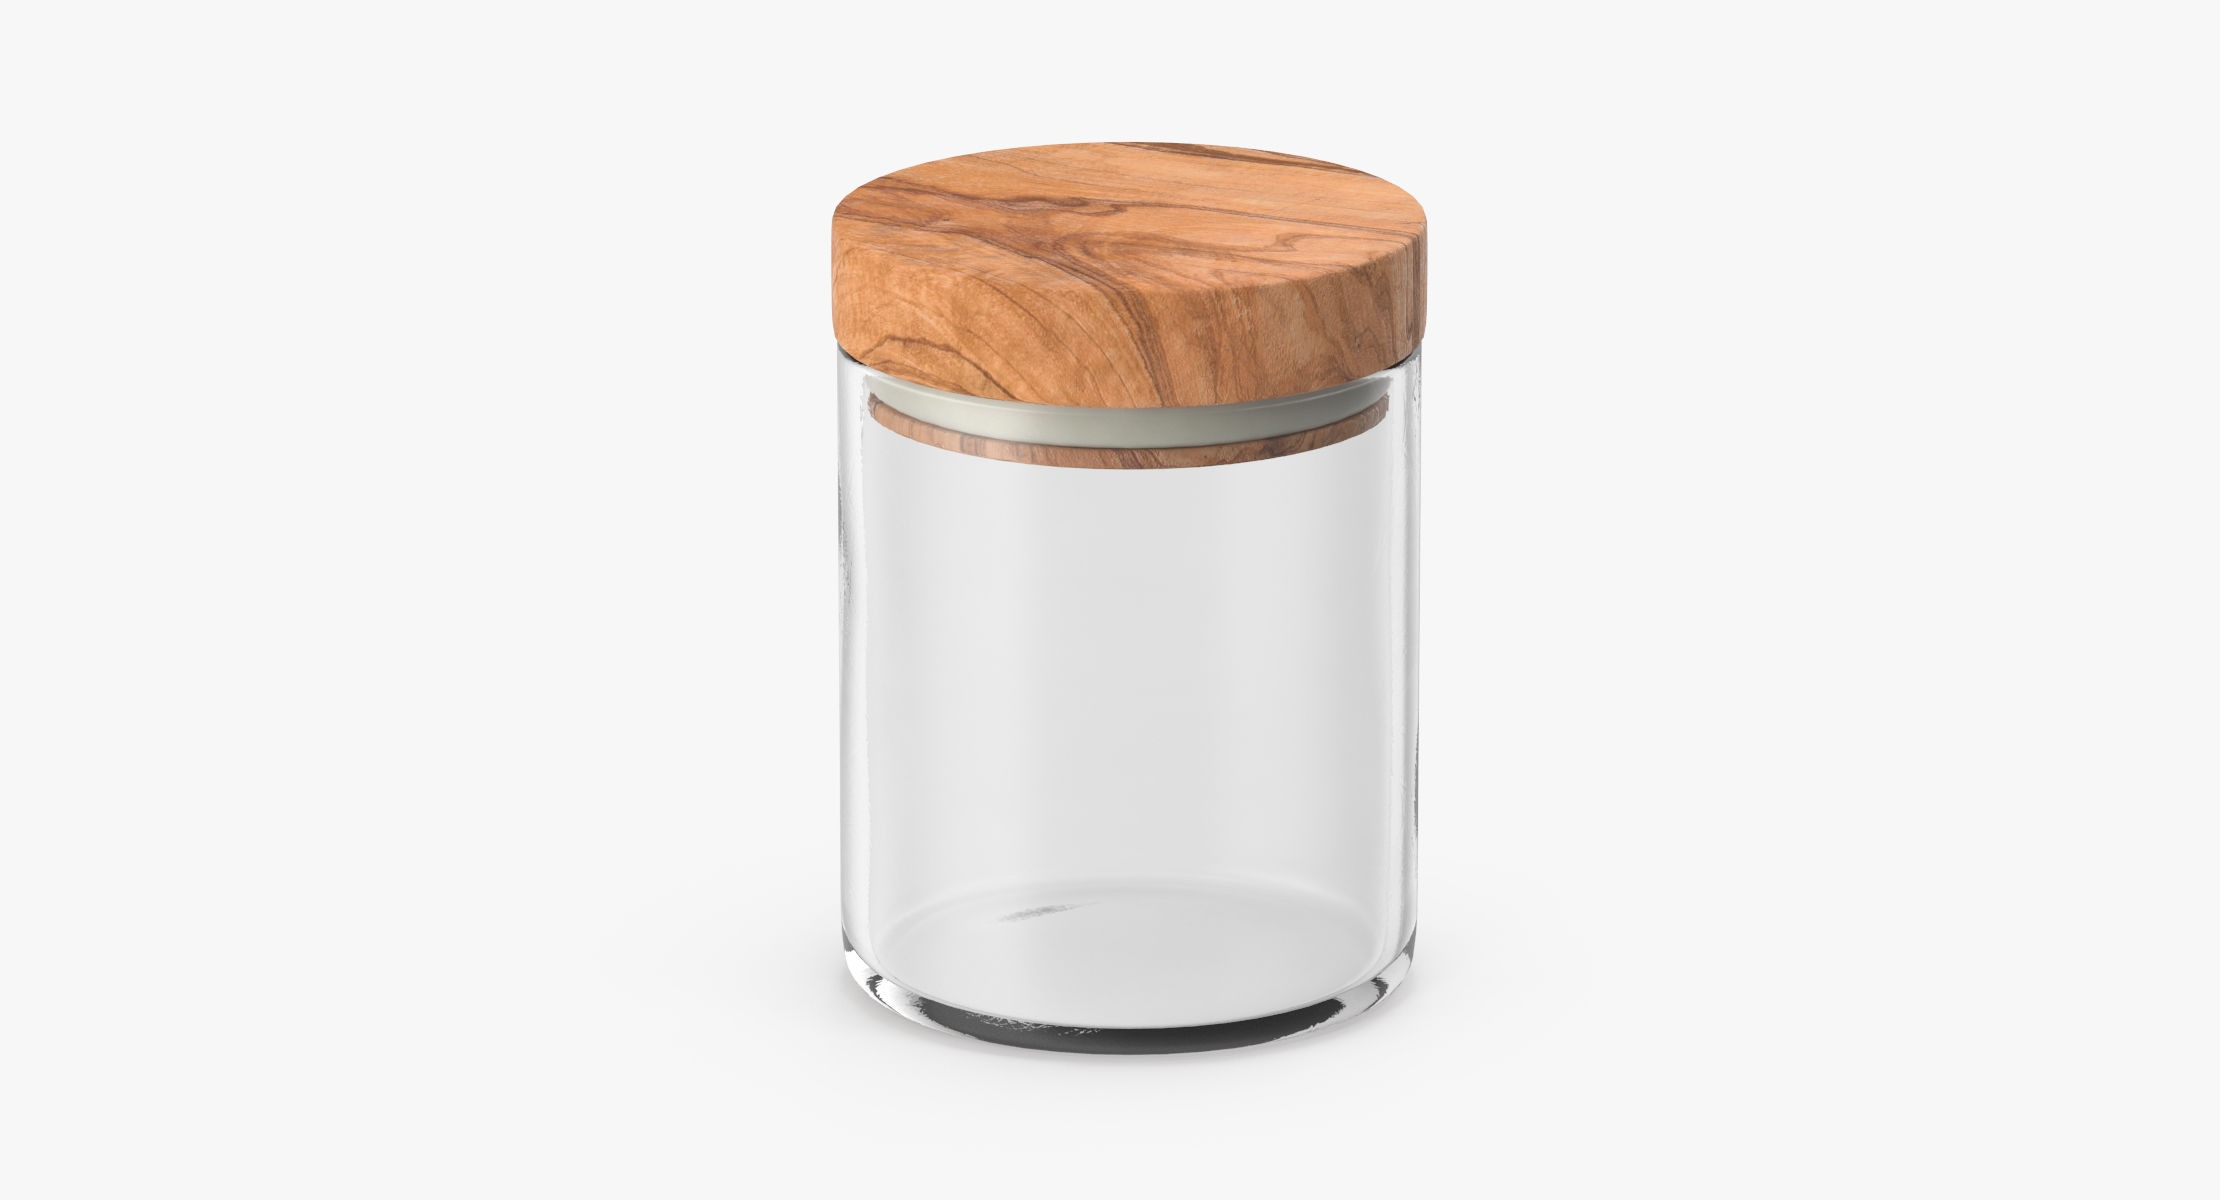 Kitchen Jars with Wood Lids 01 - reel 1